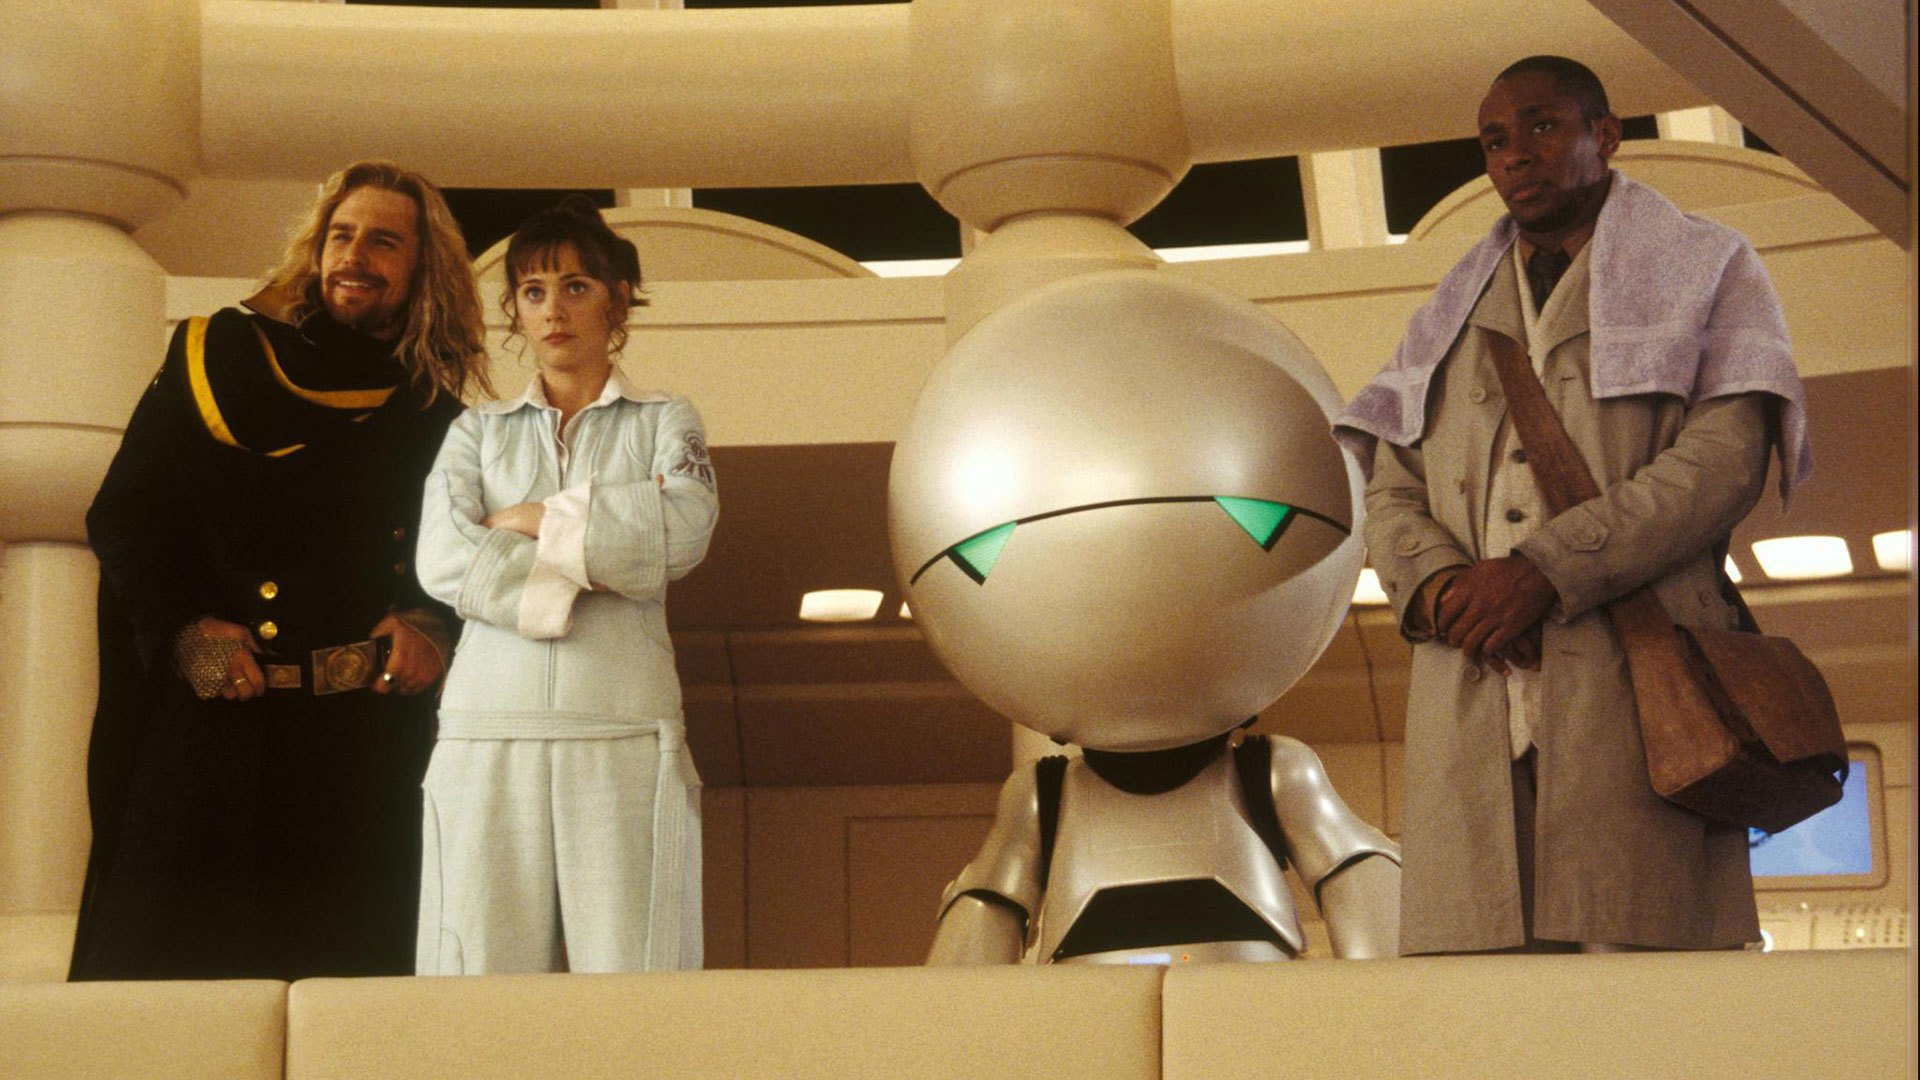 Zaphod Beeblebrox (Sam Rockwell), Trillian (Zooey Deschanel). Marvin the Paranoid Android and Ford Prefect (Mos Def) in The Hitch Hiker's Guide to the Galaxy (2005)